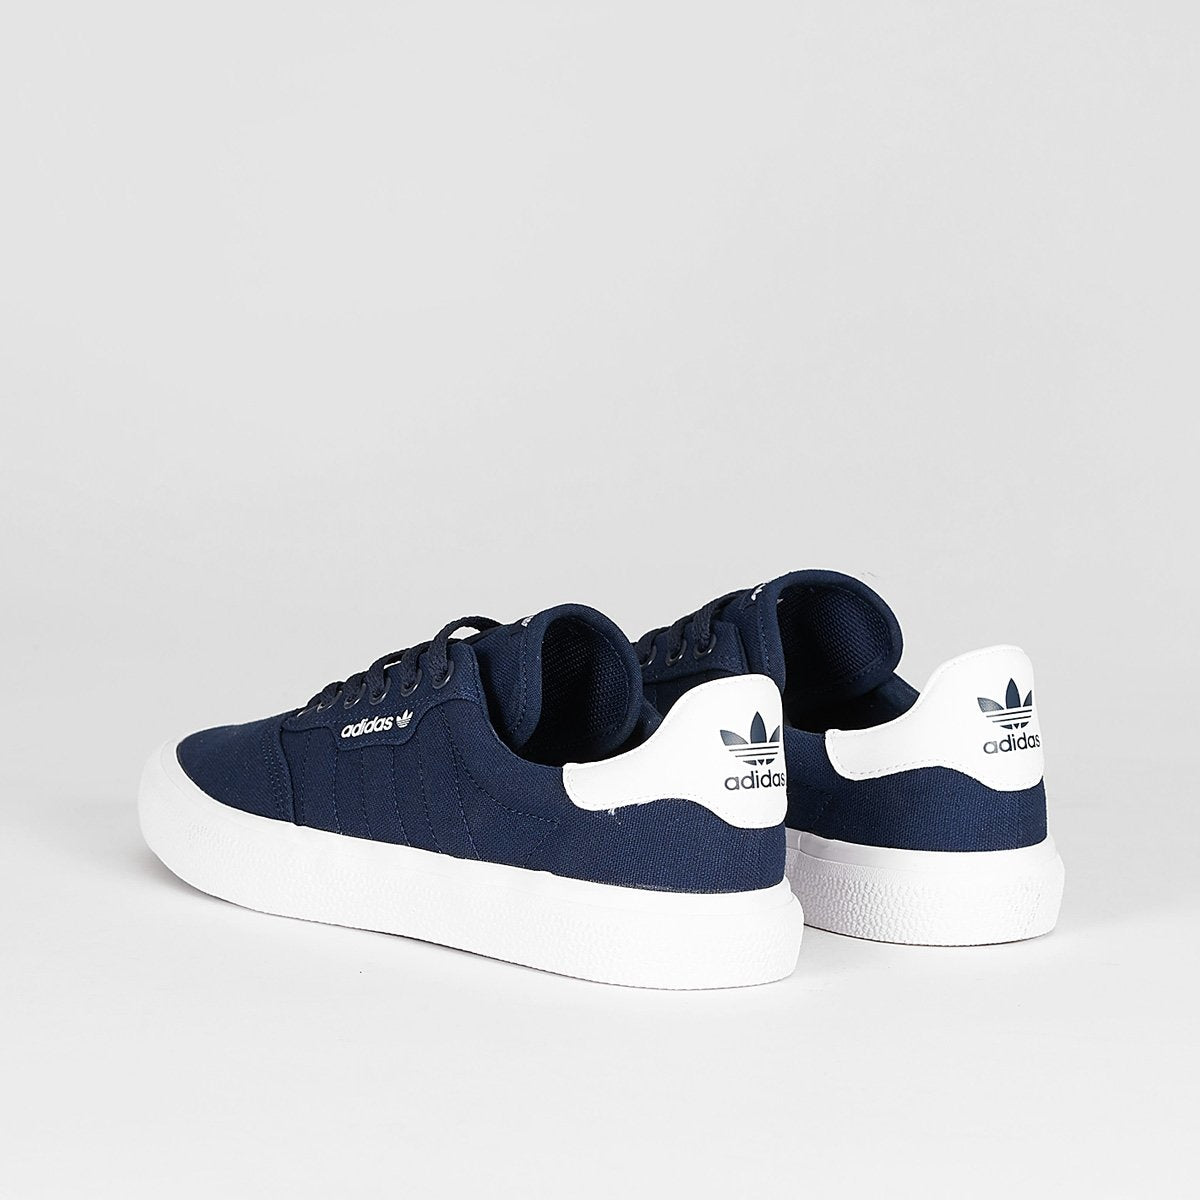 No autorizado Térmico pegamento  adidas 3MC Collegiate Navy/Collegiate Navy/Footwear White - Unisex L -  rollersnakes.co.uk – Rollersnakes